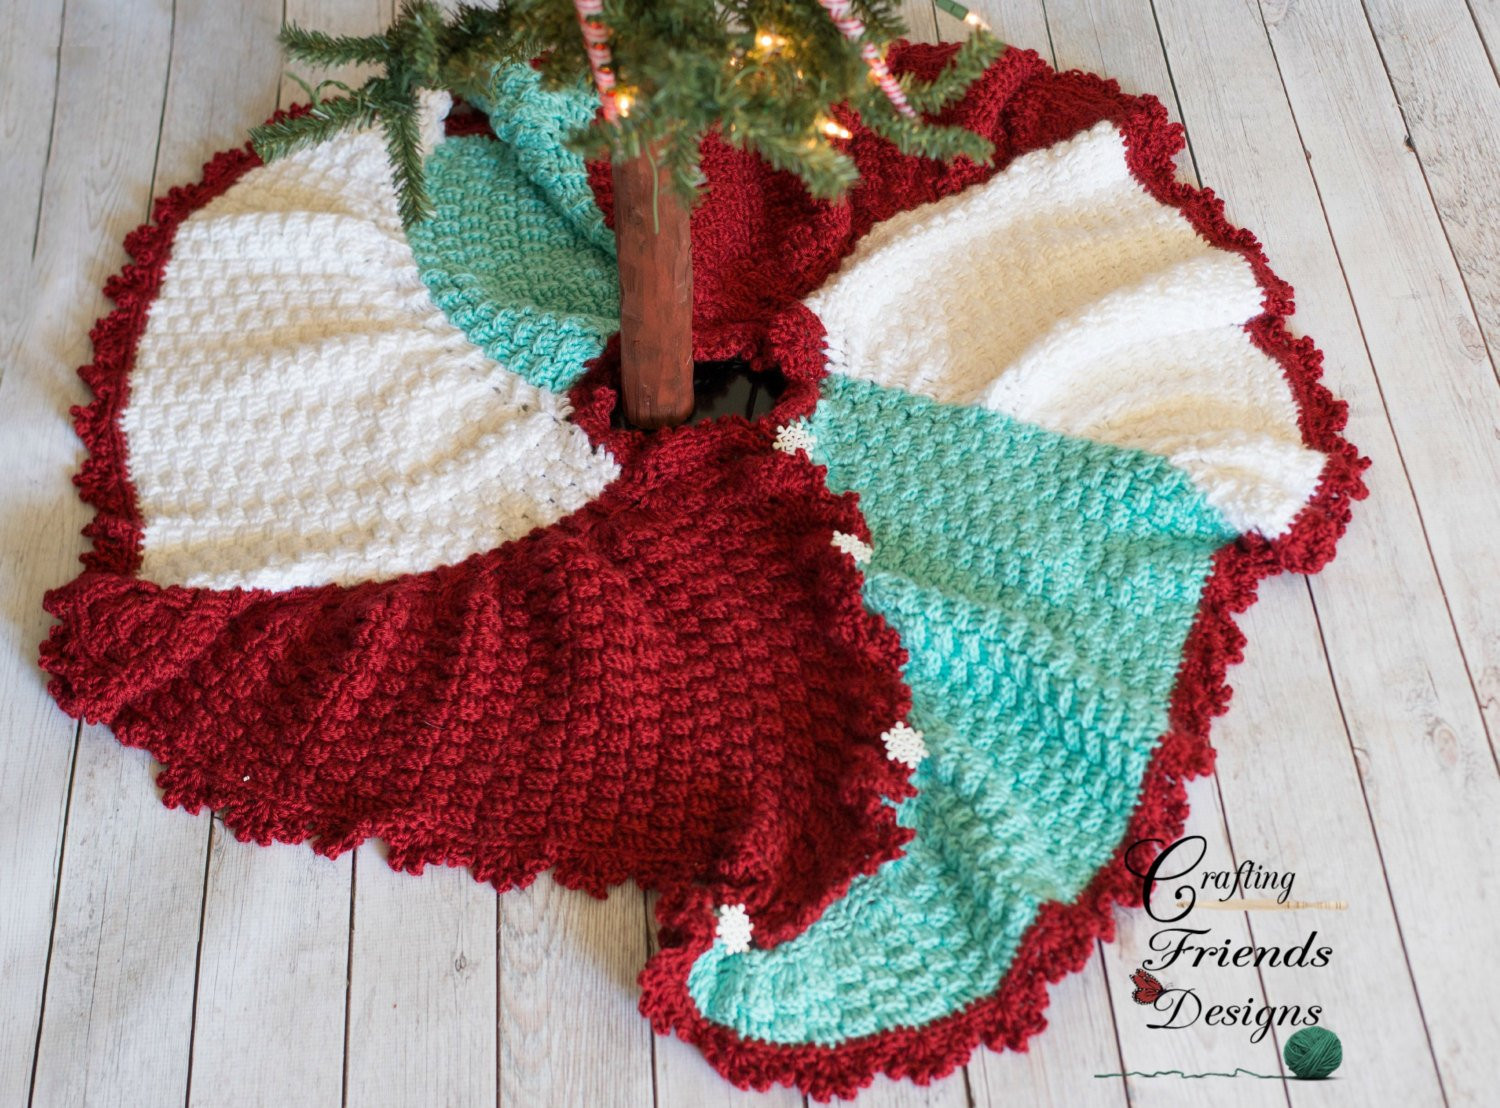 Awesome Crochet Pattern Trisquare Swirl Christmas Tree Skirt Warm Crochet Tree Skirt Of Innovative 45 Ideas Crochet Tree Skirt